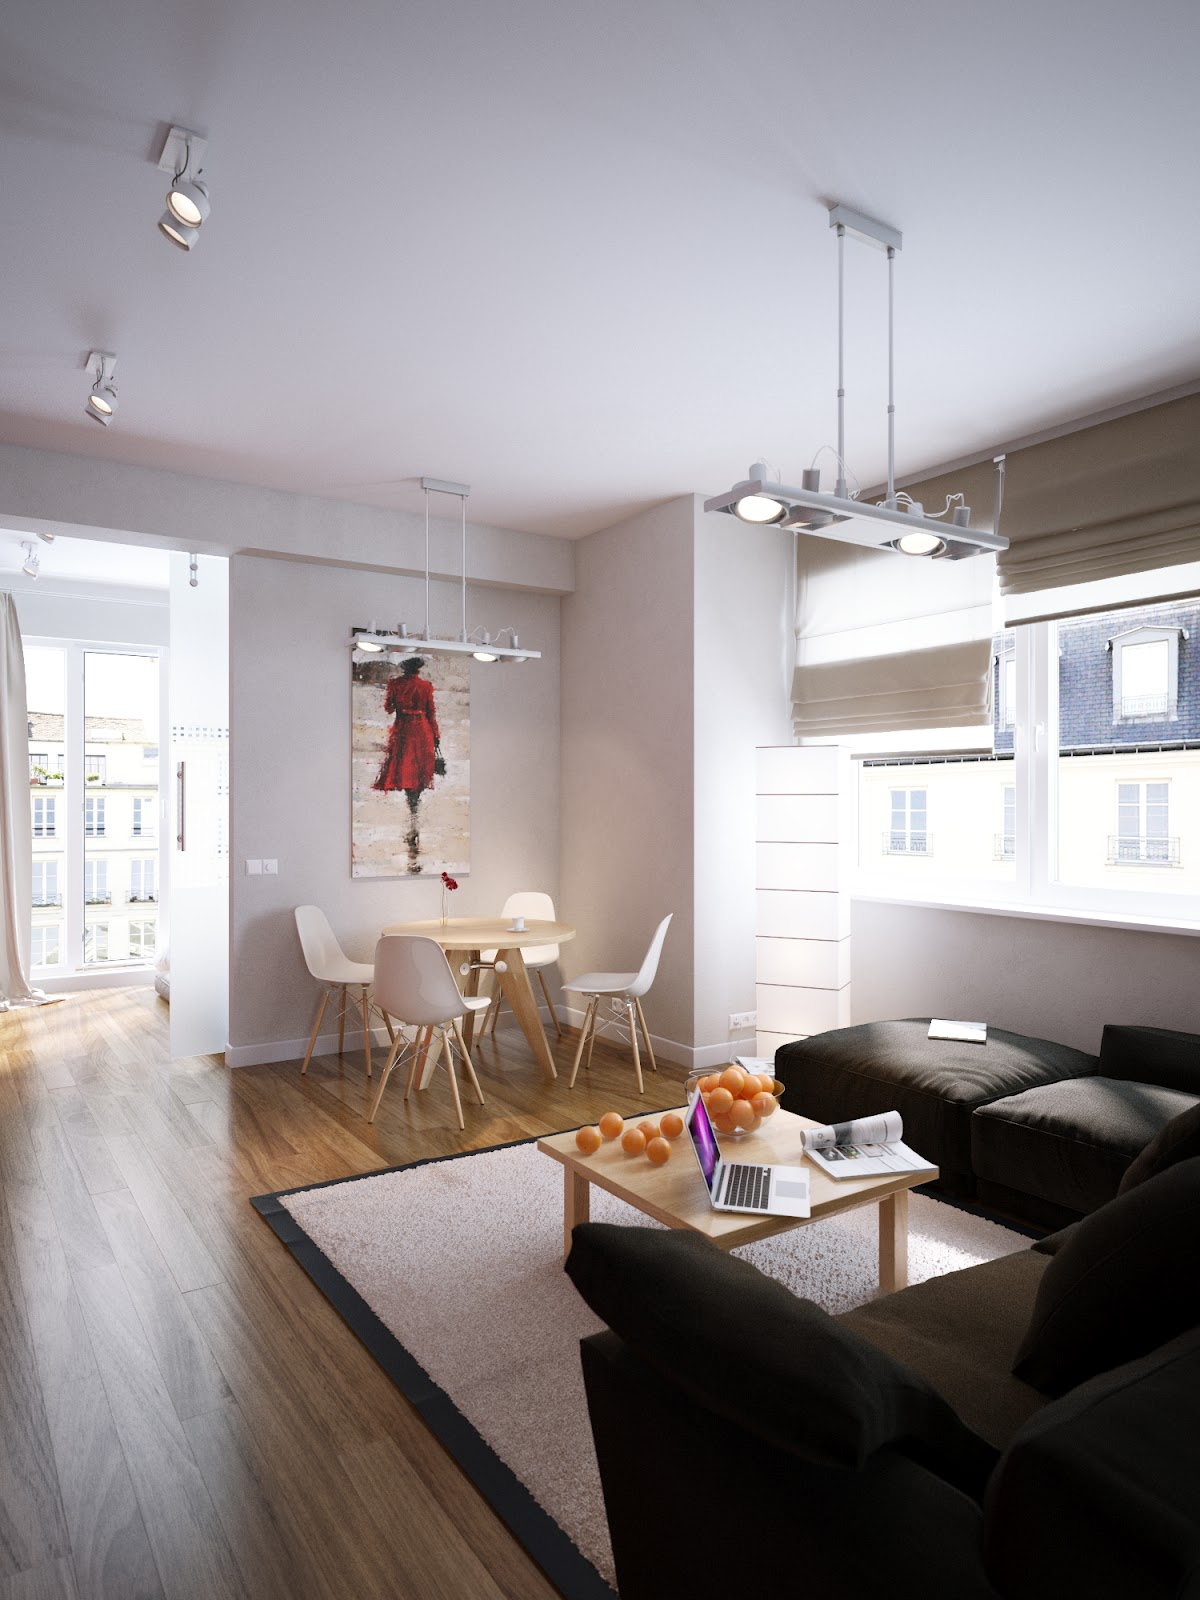 Apartment: Modern Red Apartment For A Young Couple [Visualized]